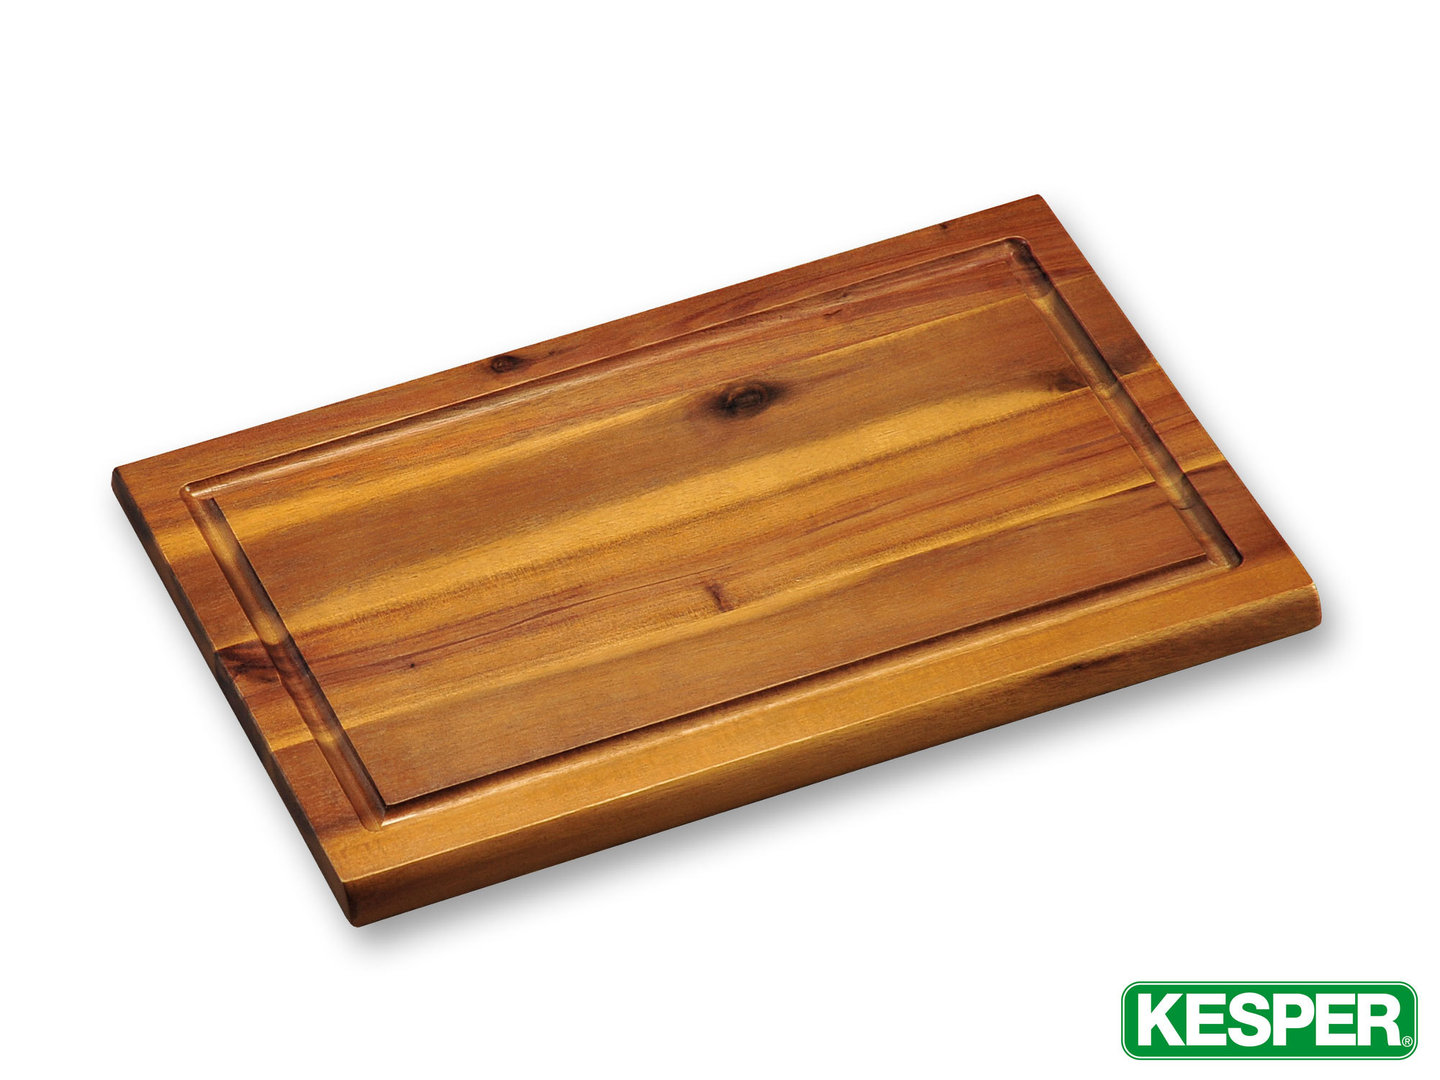 KESPER acacia wood cutting board 32 x 21 x 1,5 cm with juice rim